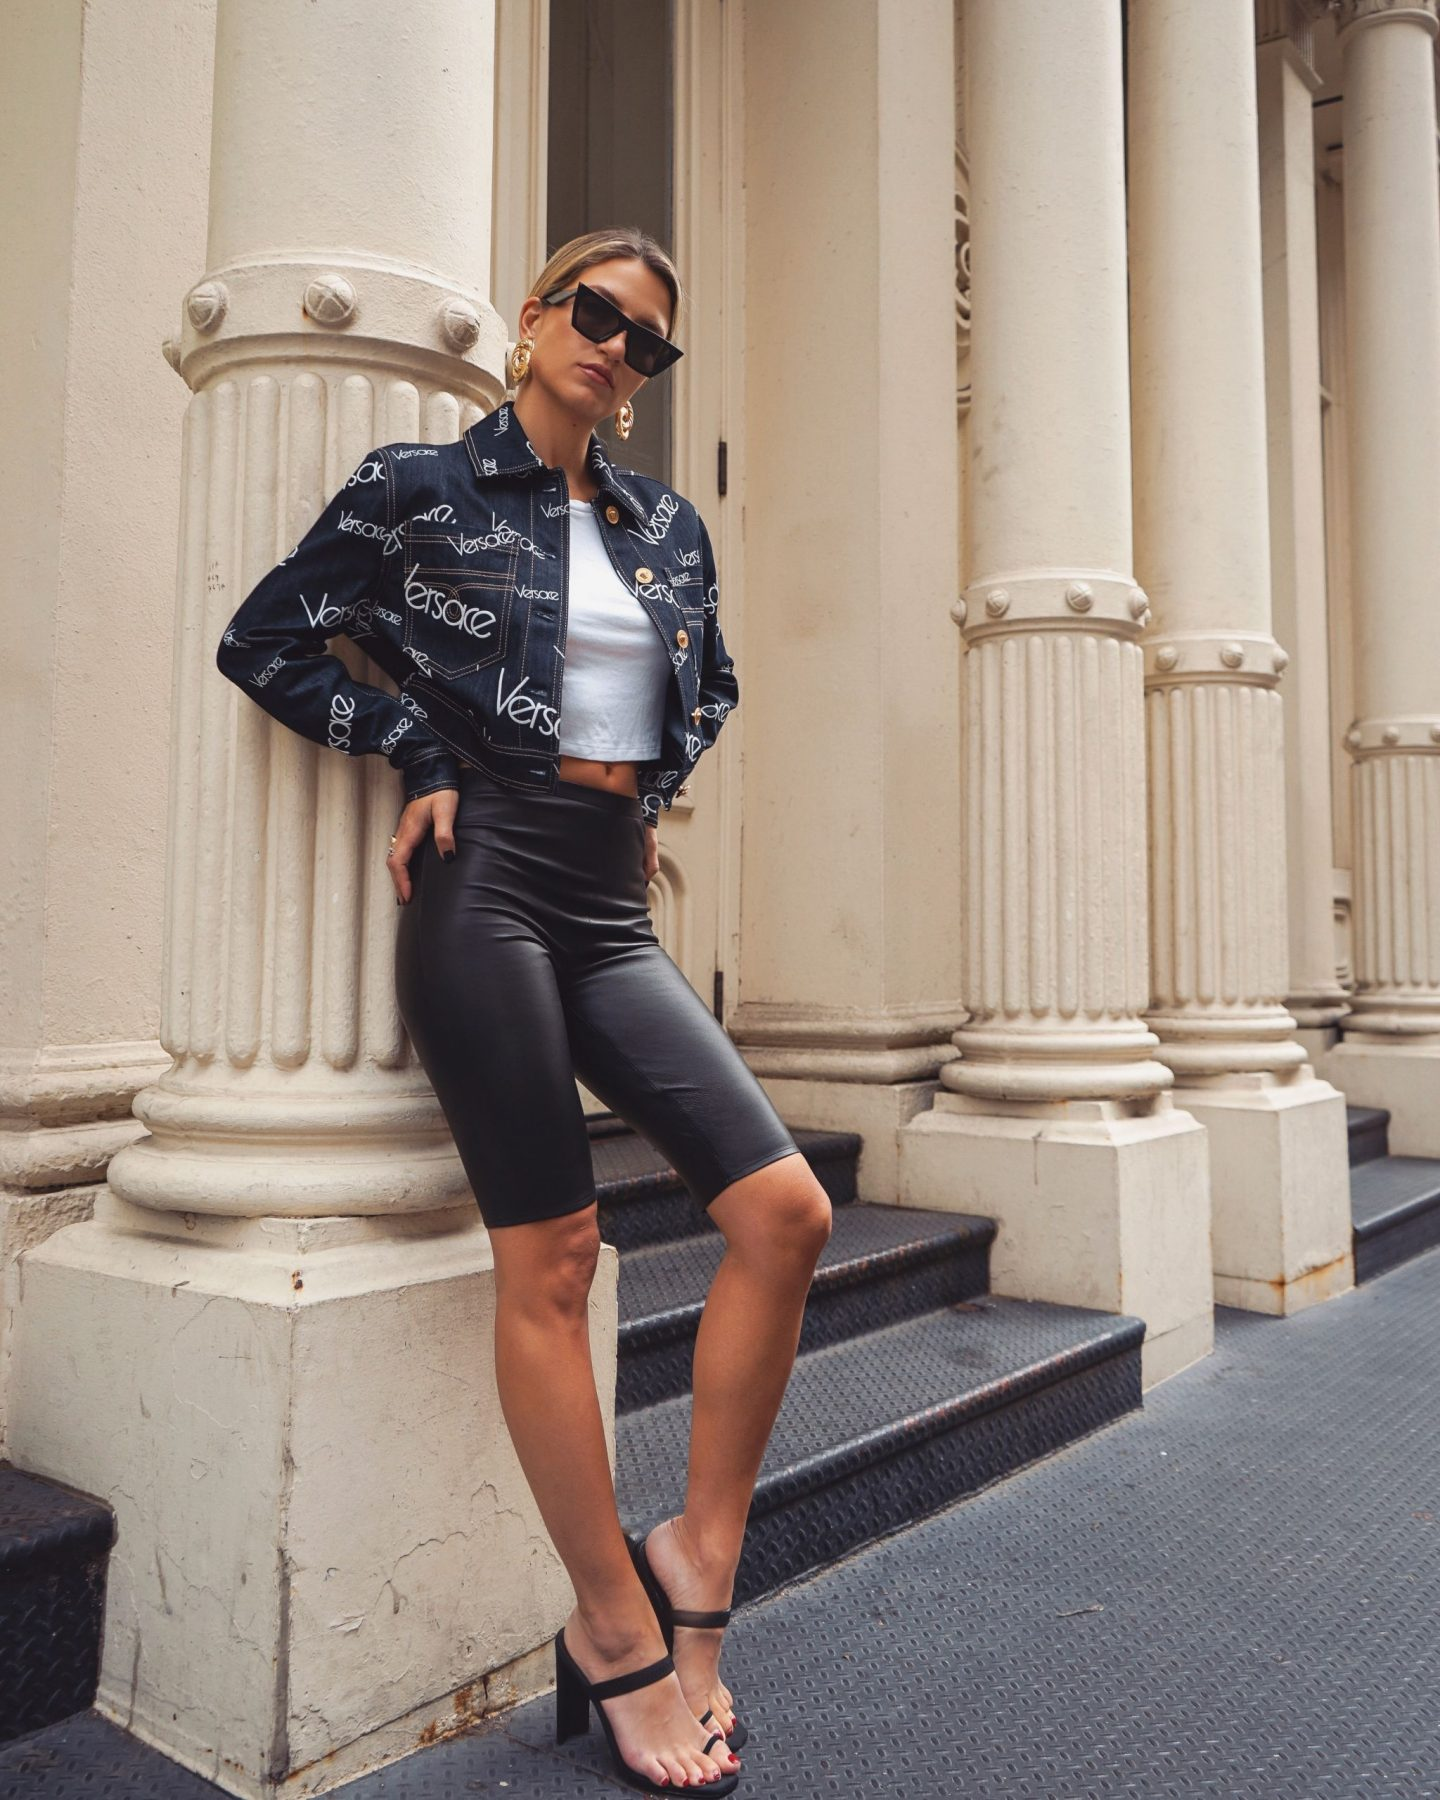 Cassandra DiMicco, Cass DiMicco, Dressed For Dreams, NYC, New York City, New York, Street Style NYC, Street Style 2018, NYC Street Style, NYC Outfit Inspo Street Style Outfits, 2018 Trends, Summer Style, Summer Outfit Inspo, NYC Fashion Blogger, NYC Fashion Blogger, NYC to do list, NYC to do, NYC bucket list, NYC Instagram Spots, Versace, Versace logo mania, Versace logo mania denim crop jacket, Versace logo mania denim jacket, Versace denim jacket, Celine edge sunnies, leather biker shots, Tony Bianco Sierra sandals